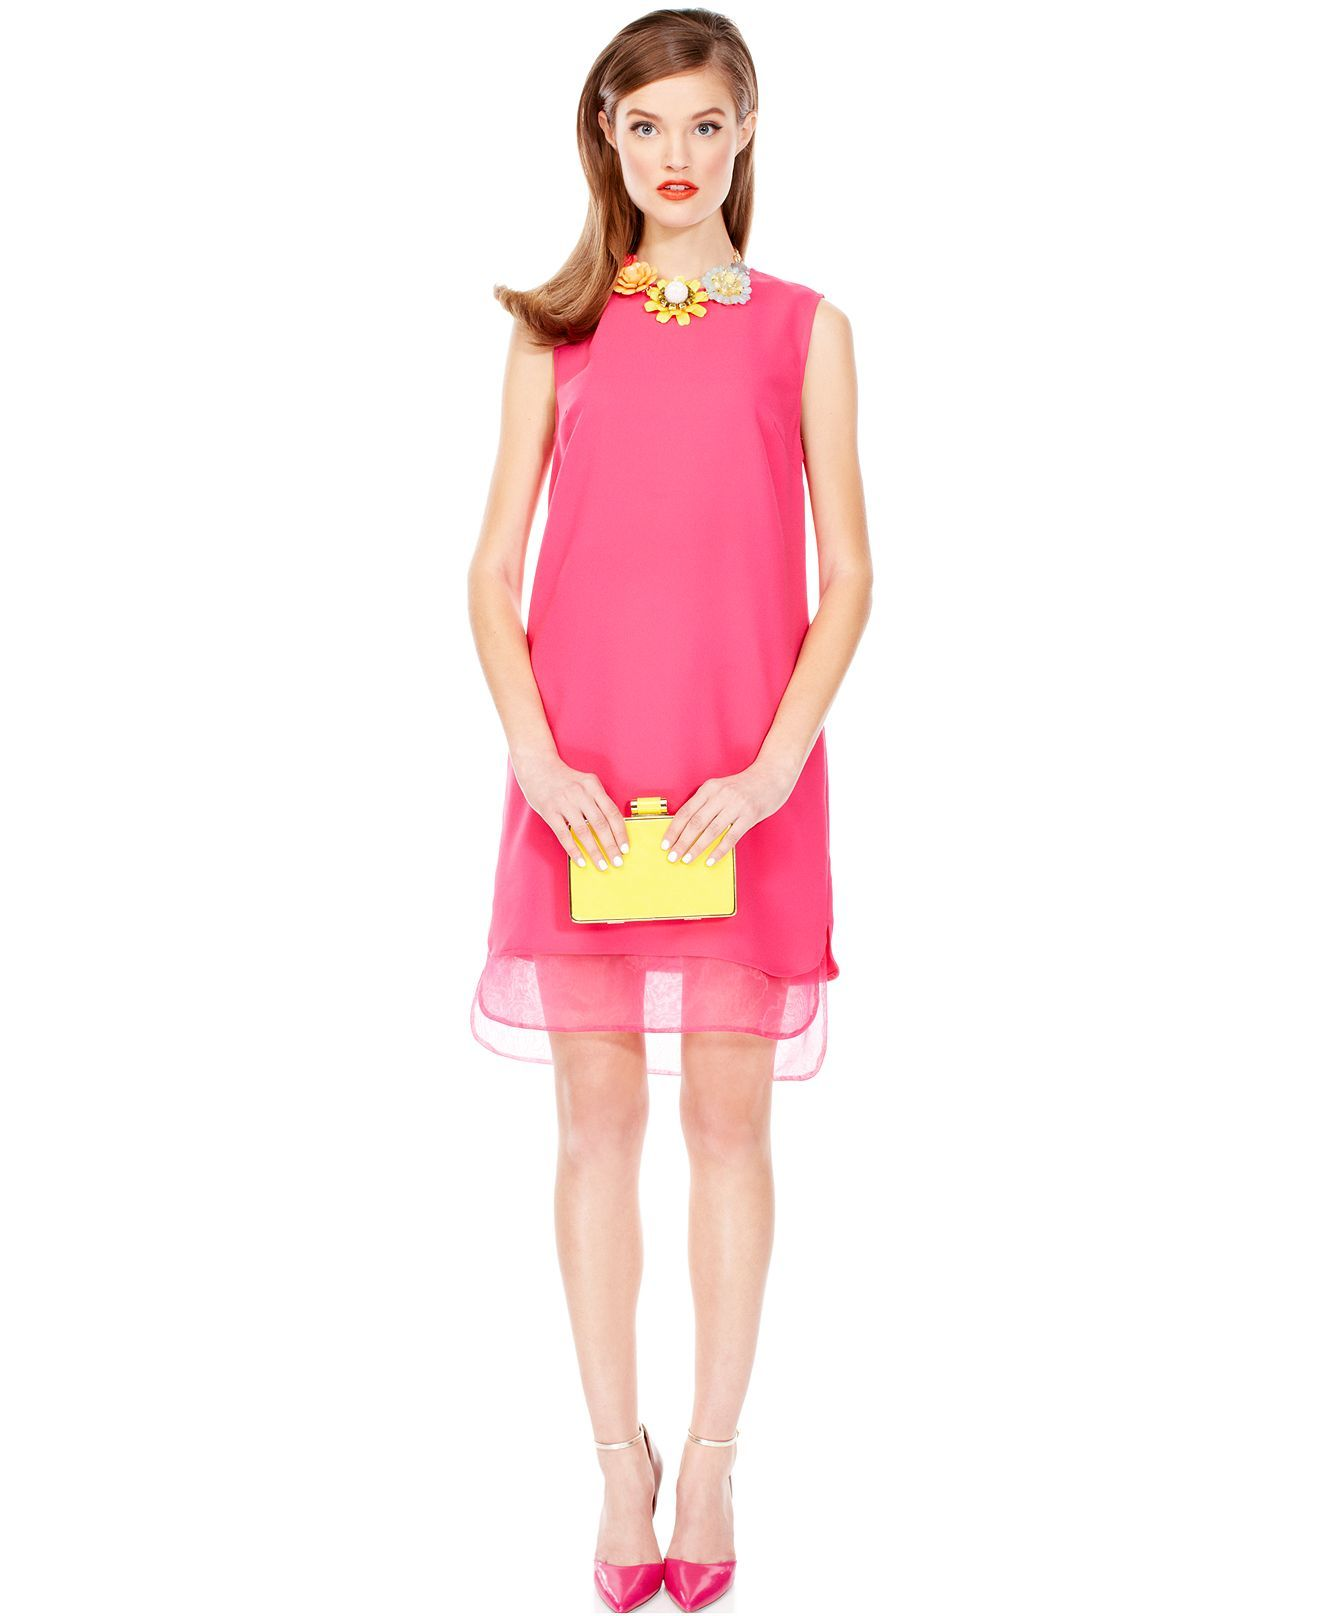 Pin By The Scoop On Trend We Love Sheer Details Womens Shift Dresses Hot Pink Dresses Love Clothing [ 1616 x 1320 Pixel ]